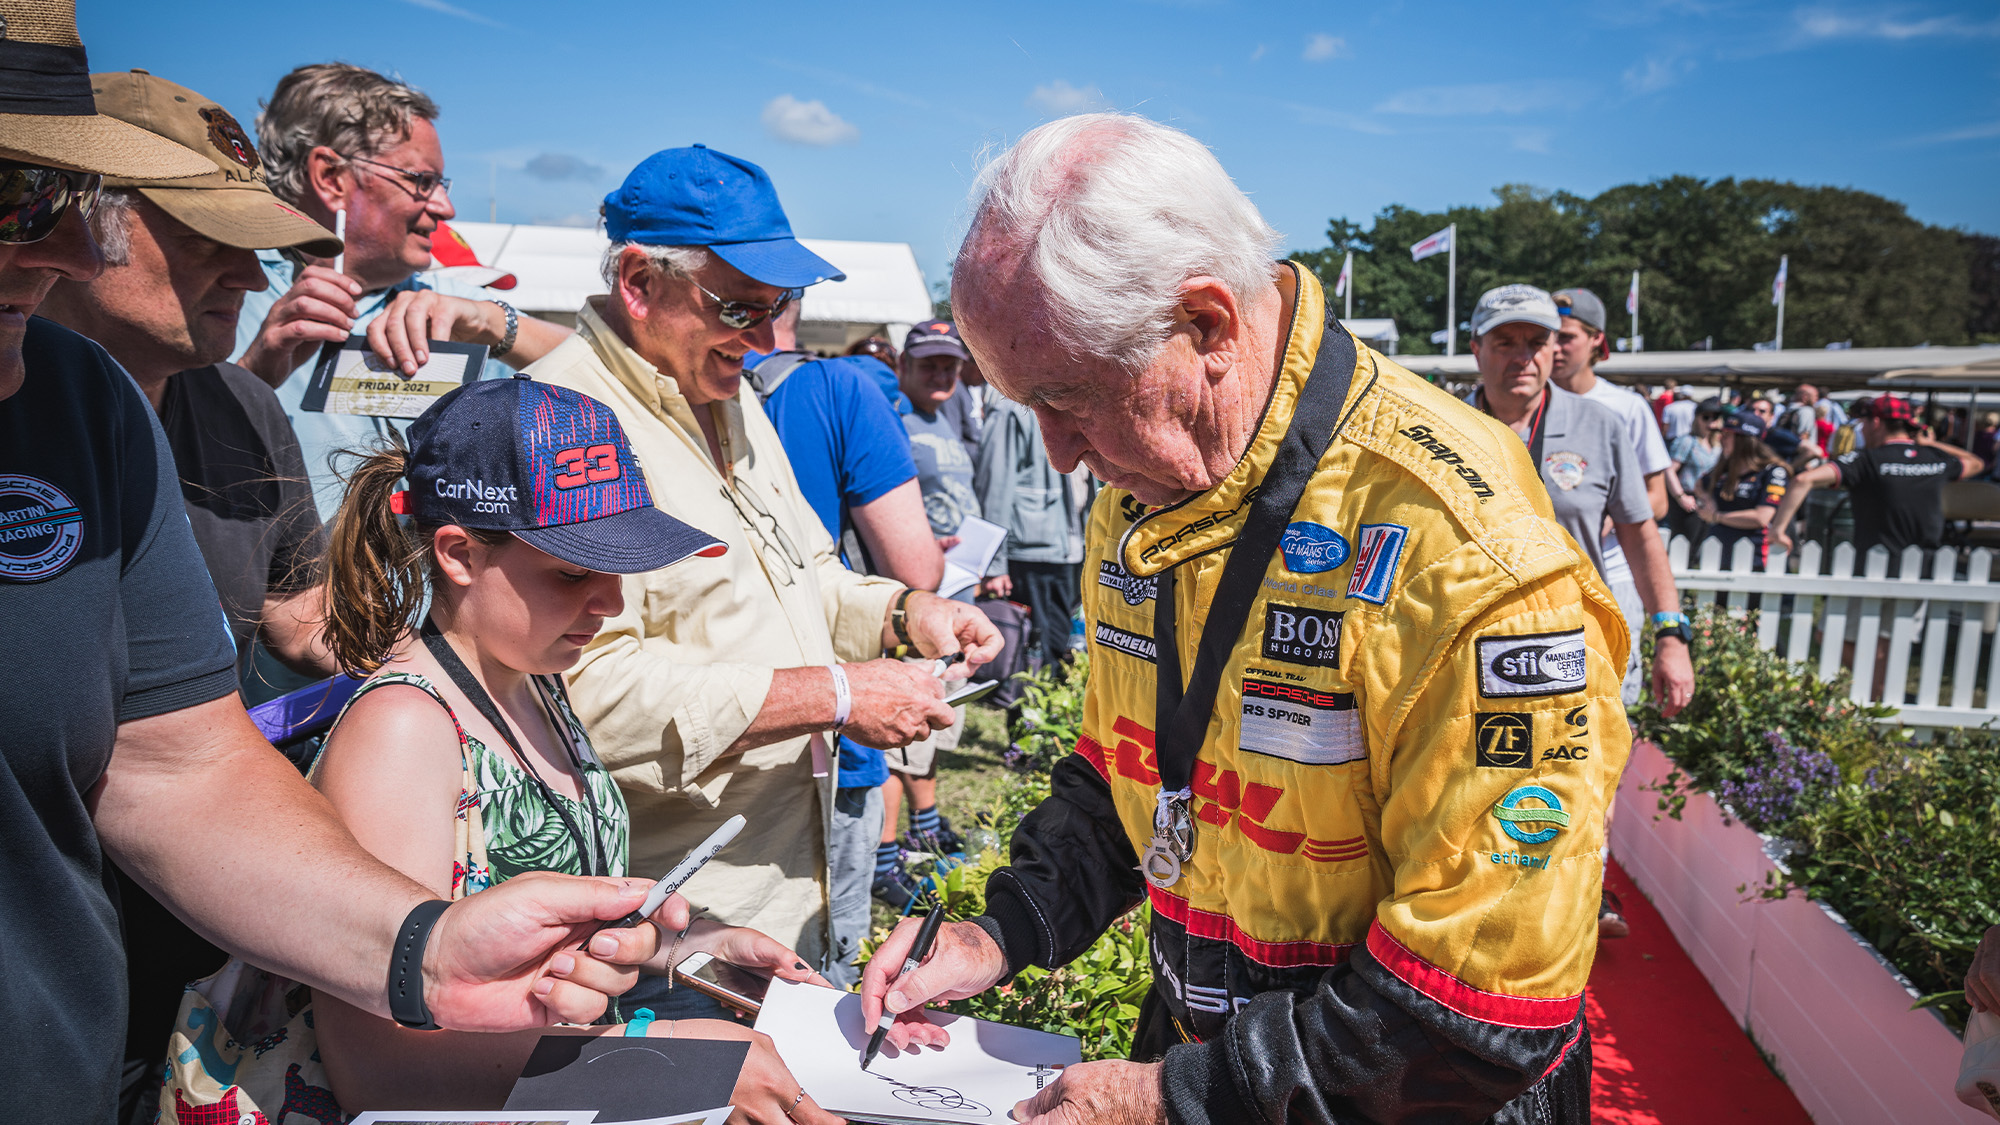 Roger Penske signs autographs at the 2021 Goodwood Festival of Speed